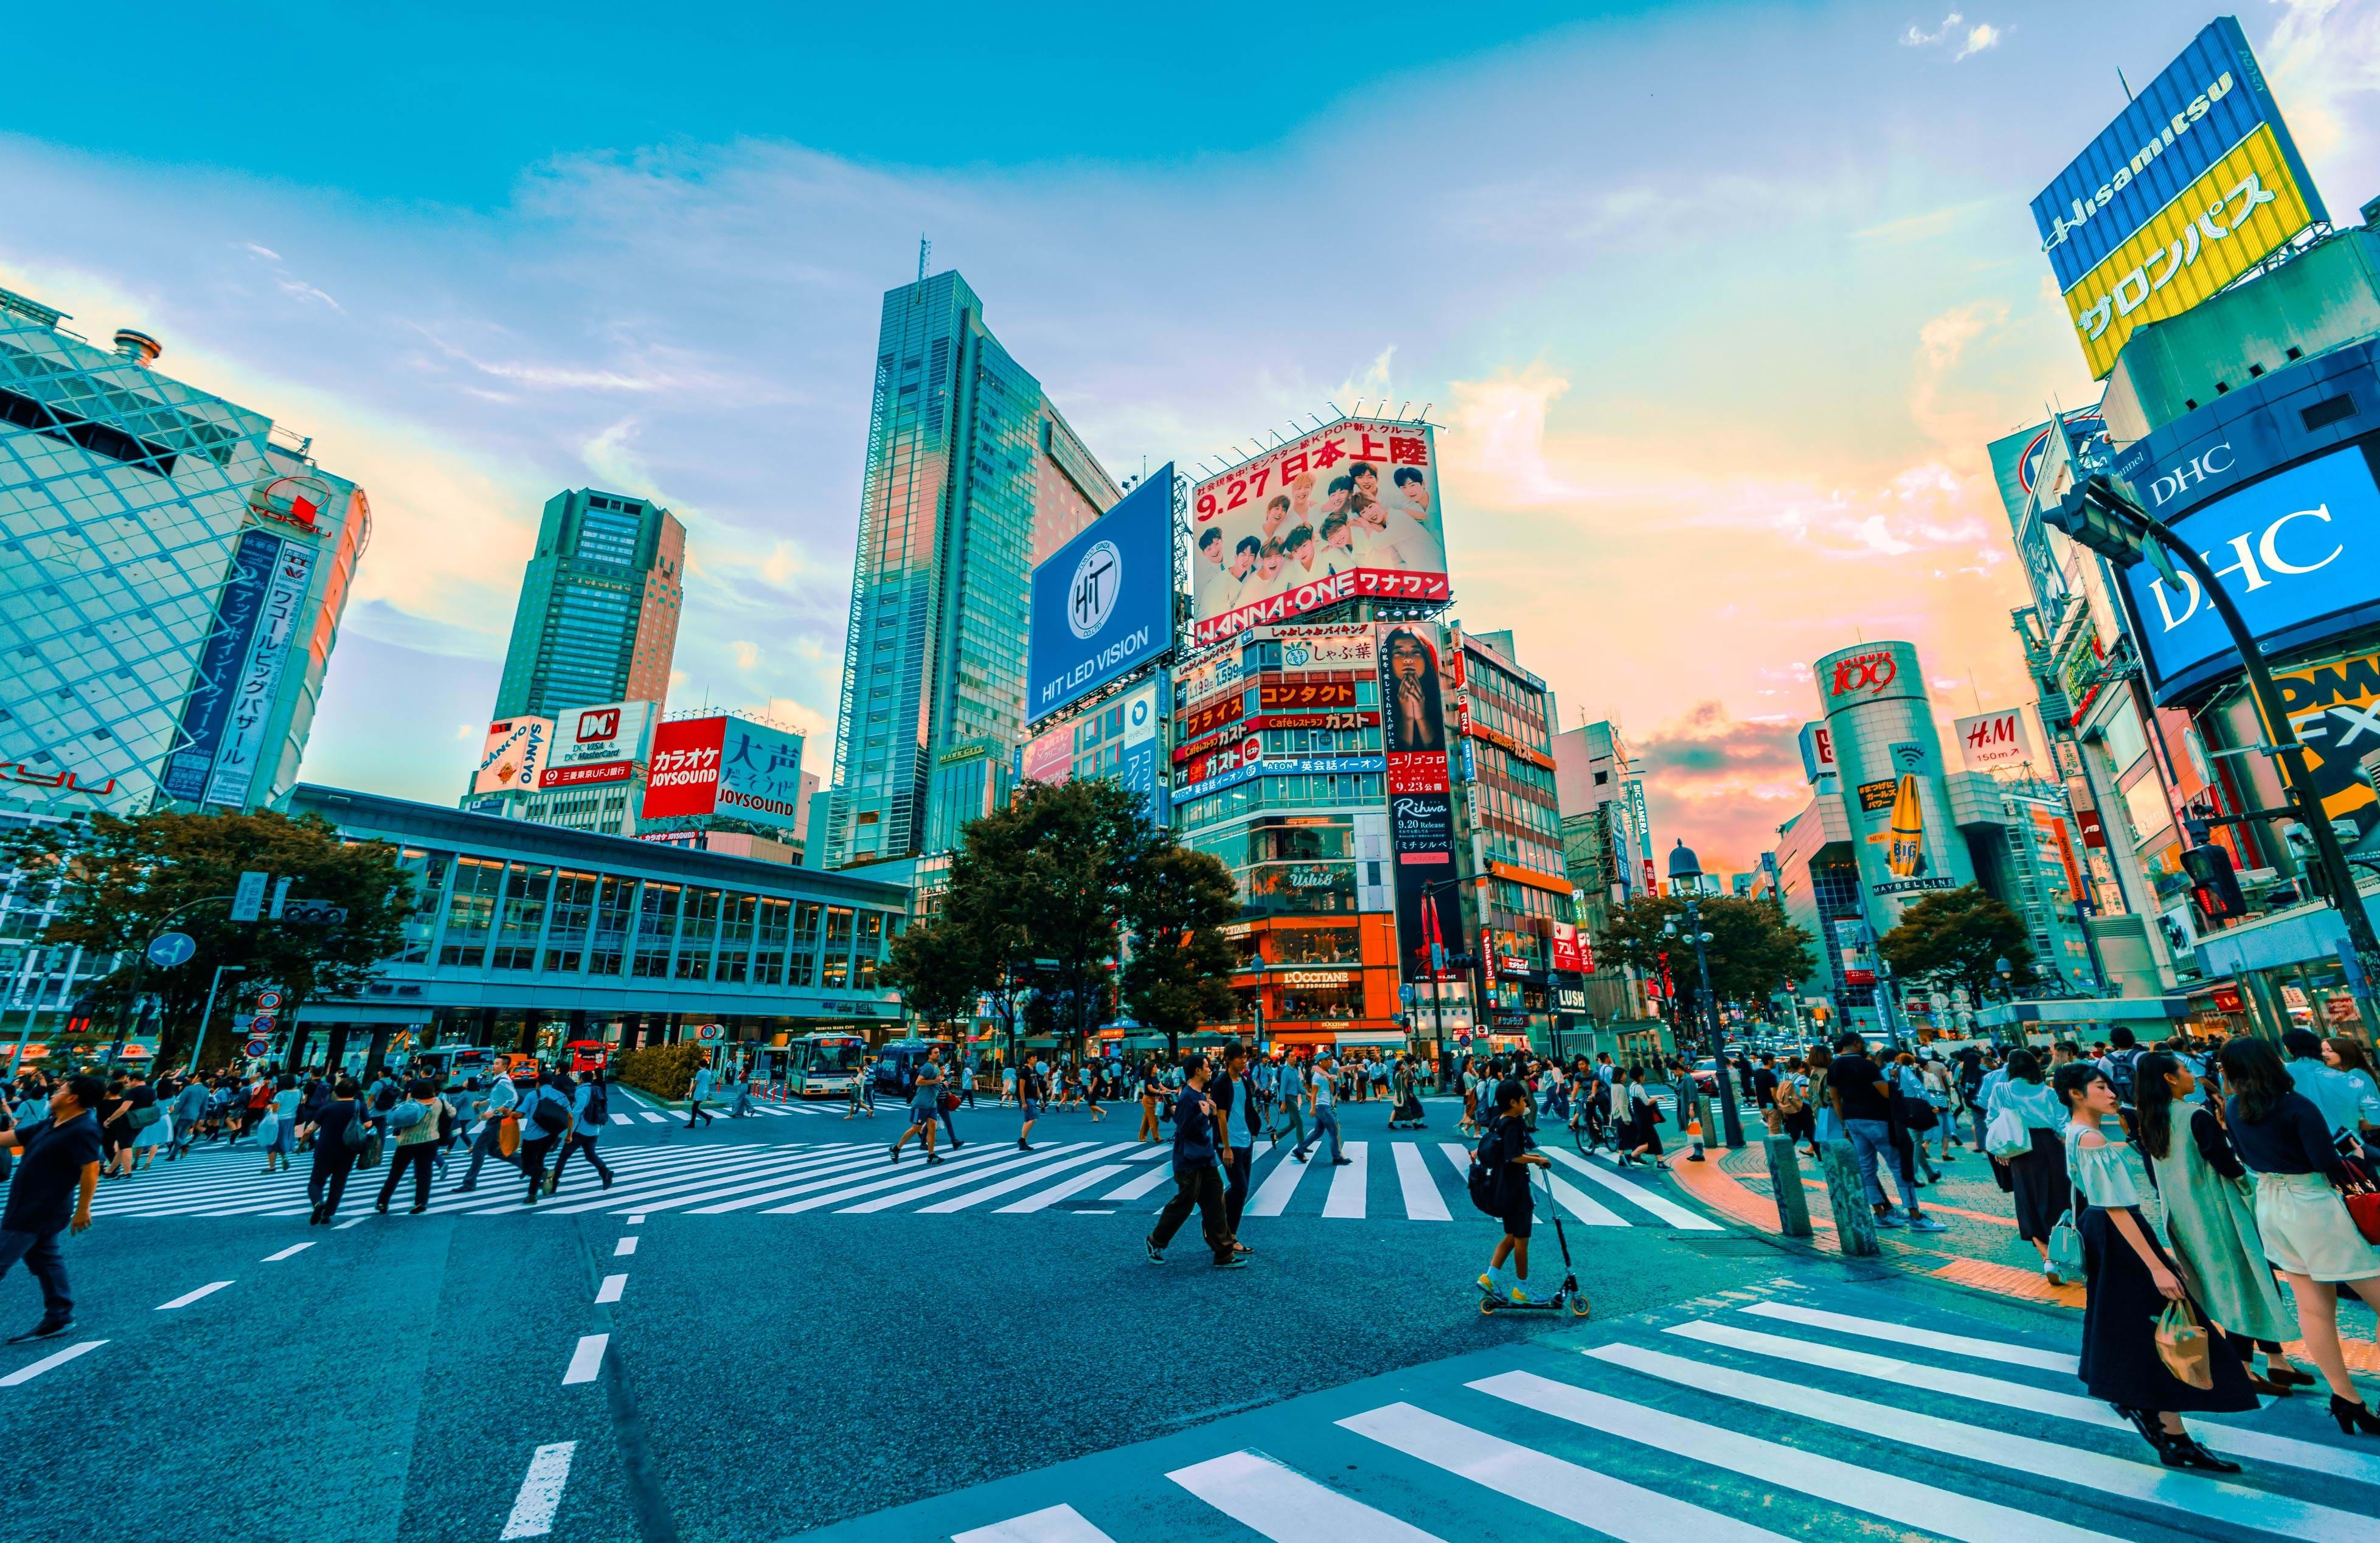 tokyo-intersection-with-billboards-cover